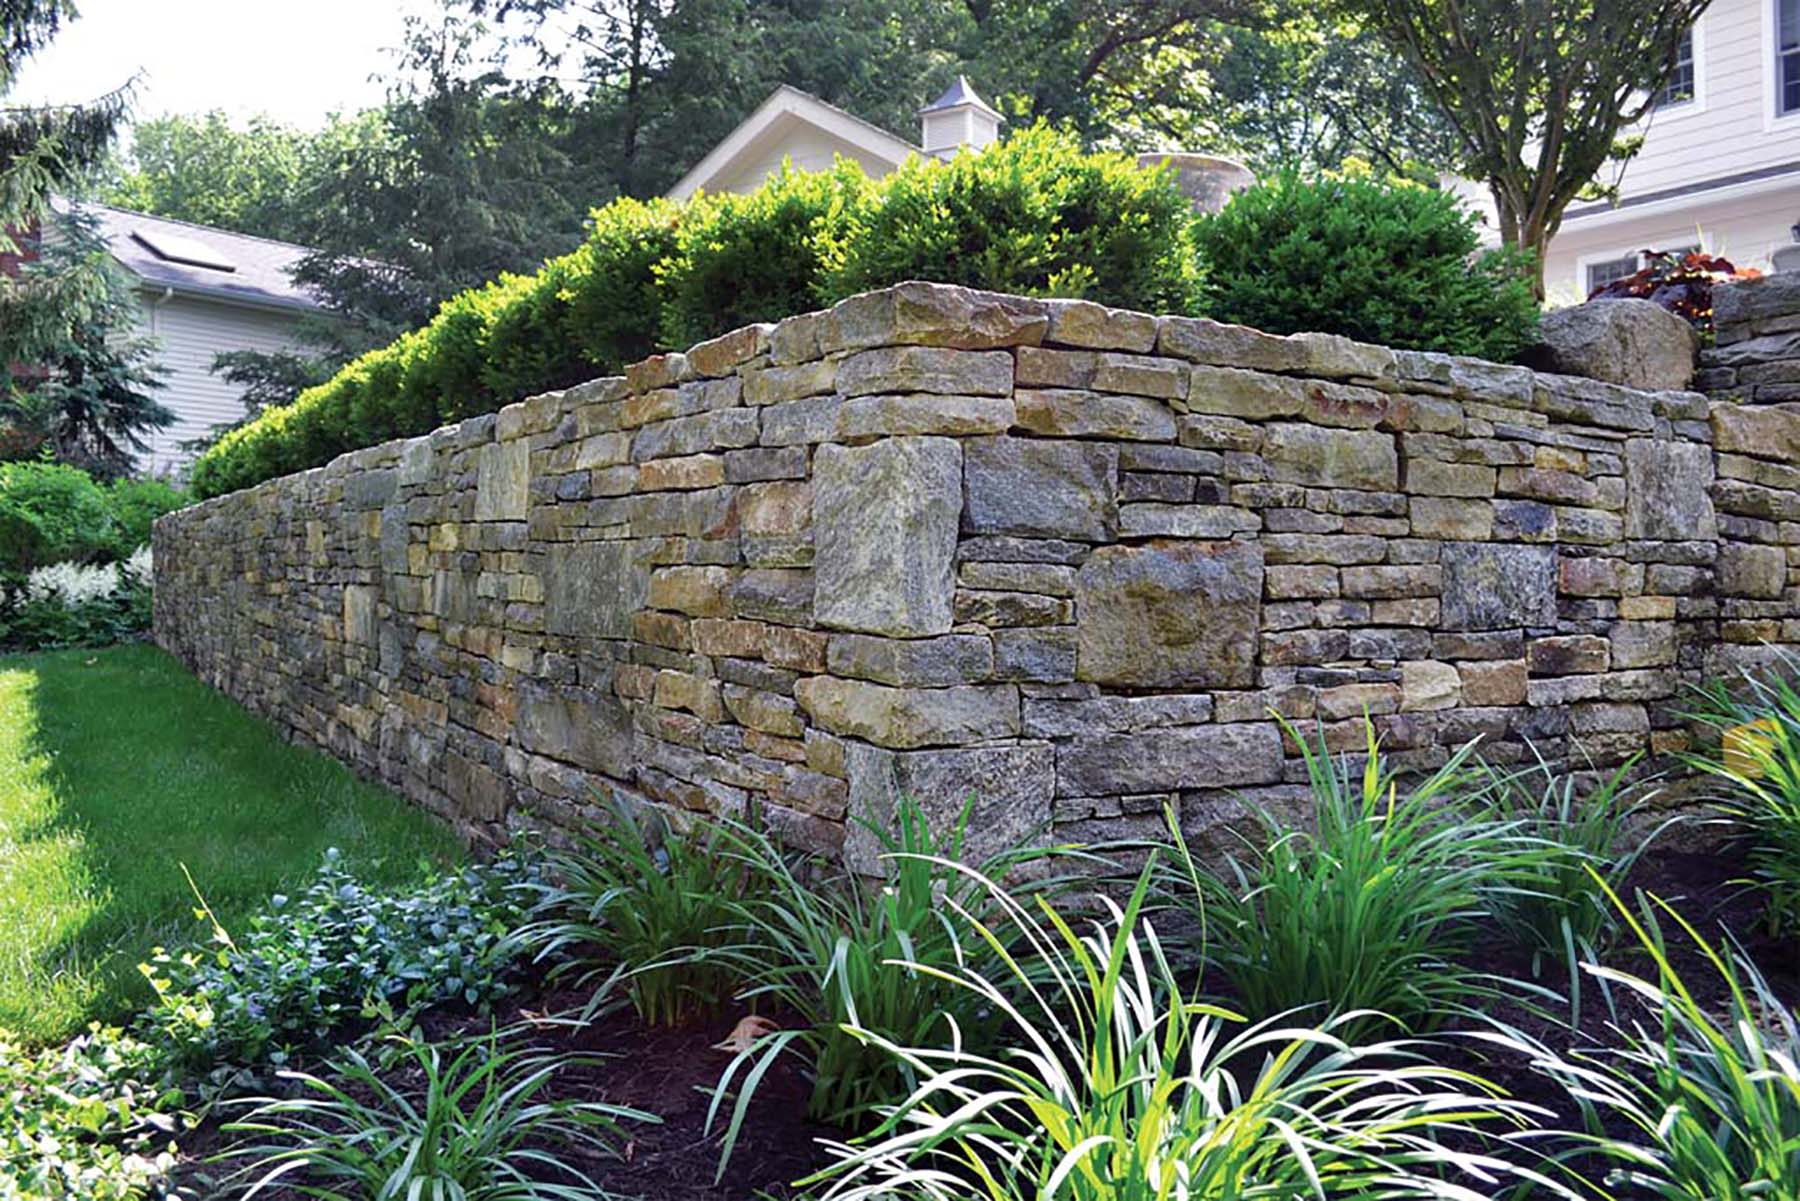 natural stone Ticonderoga granite retaining wall in residential backyard